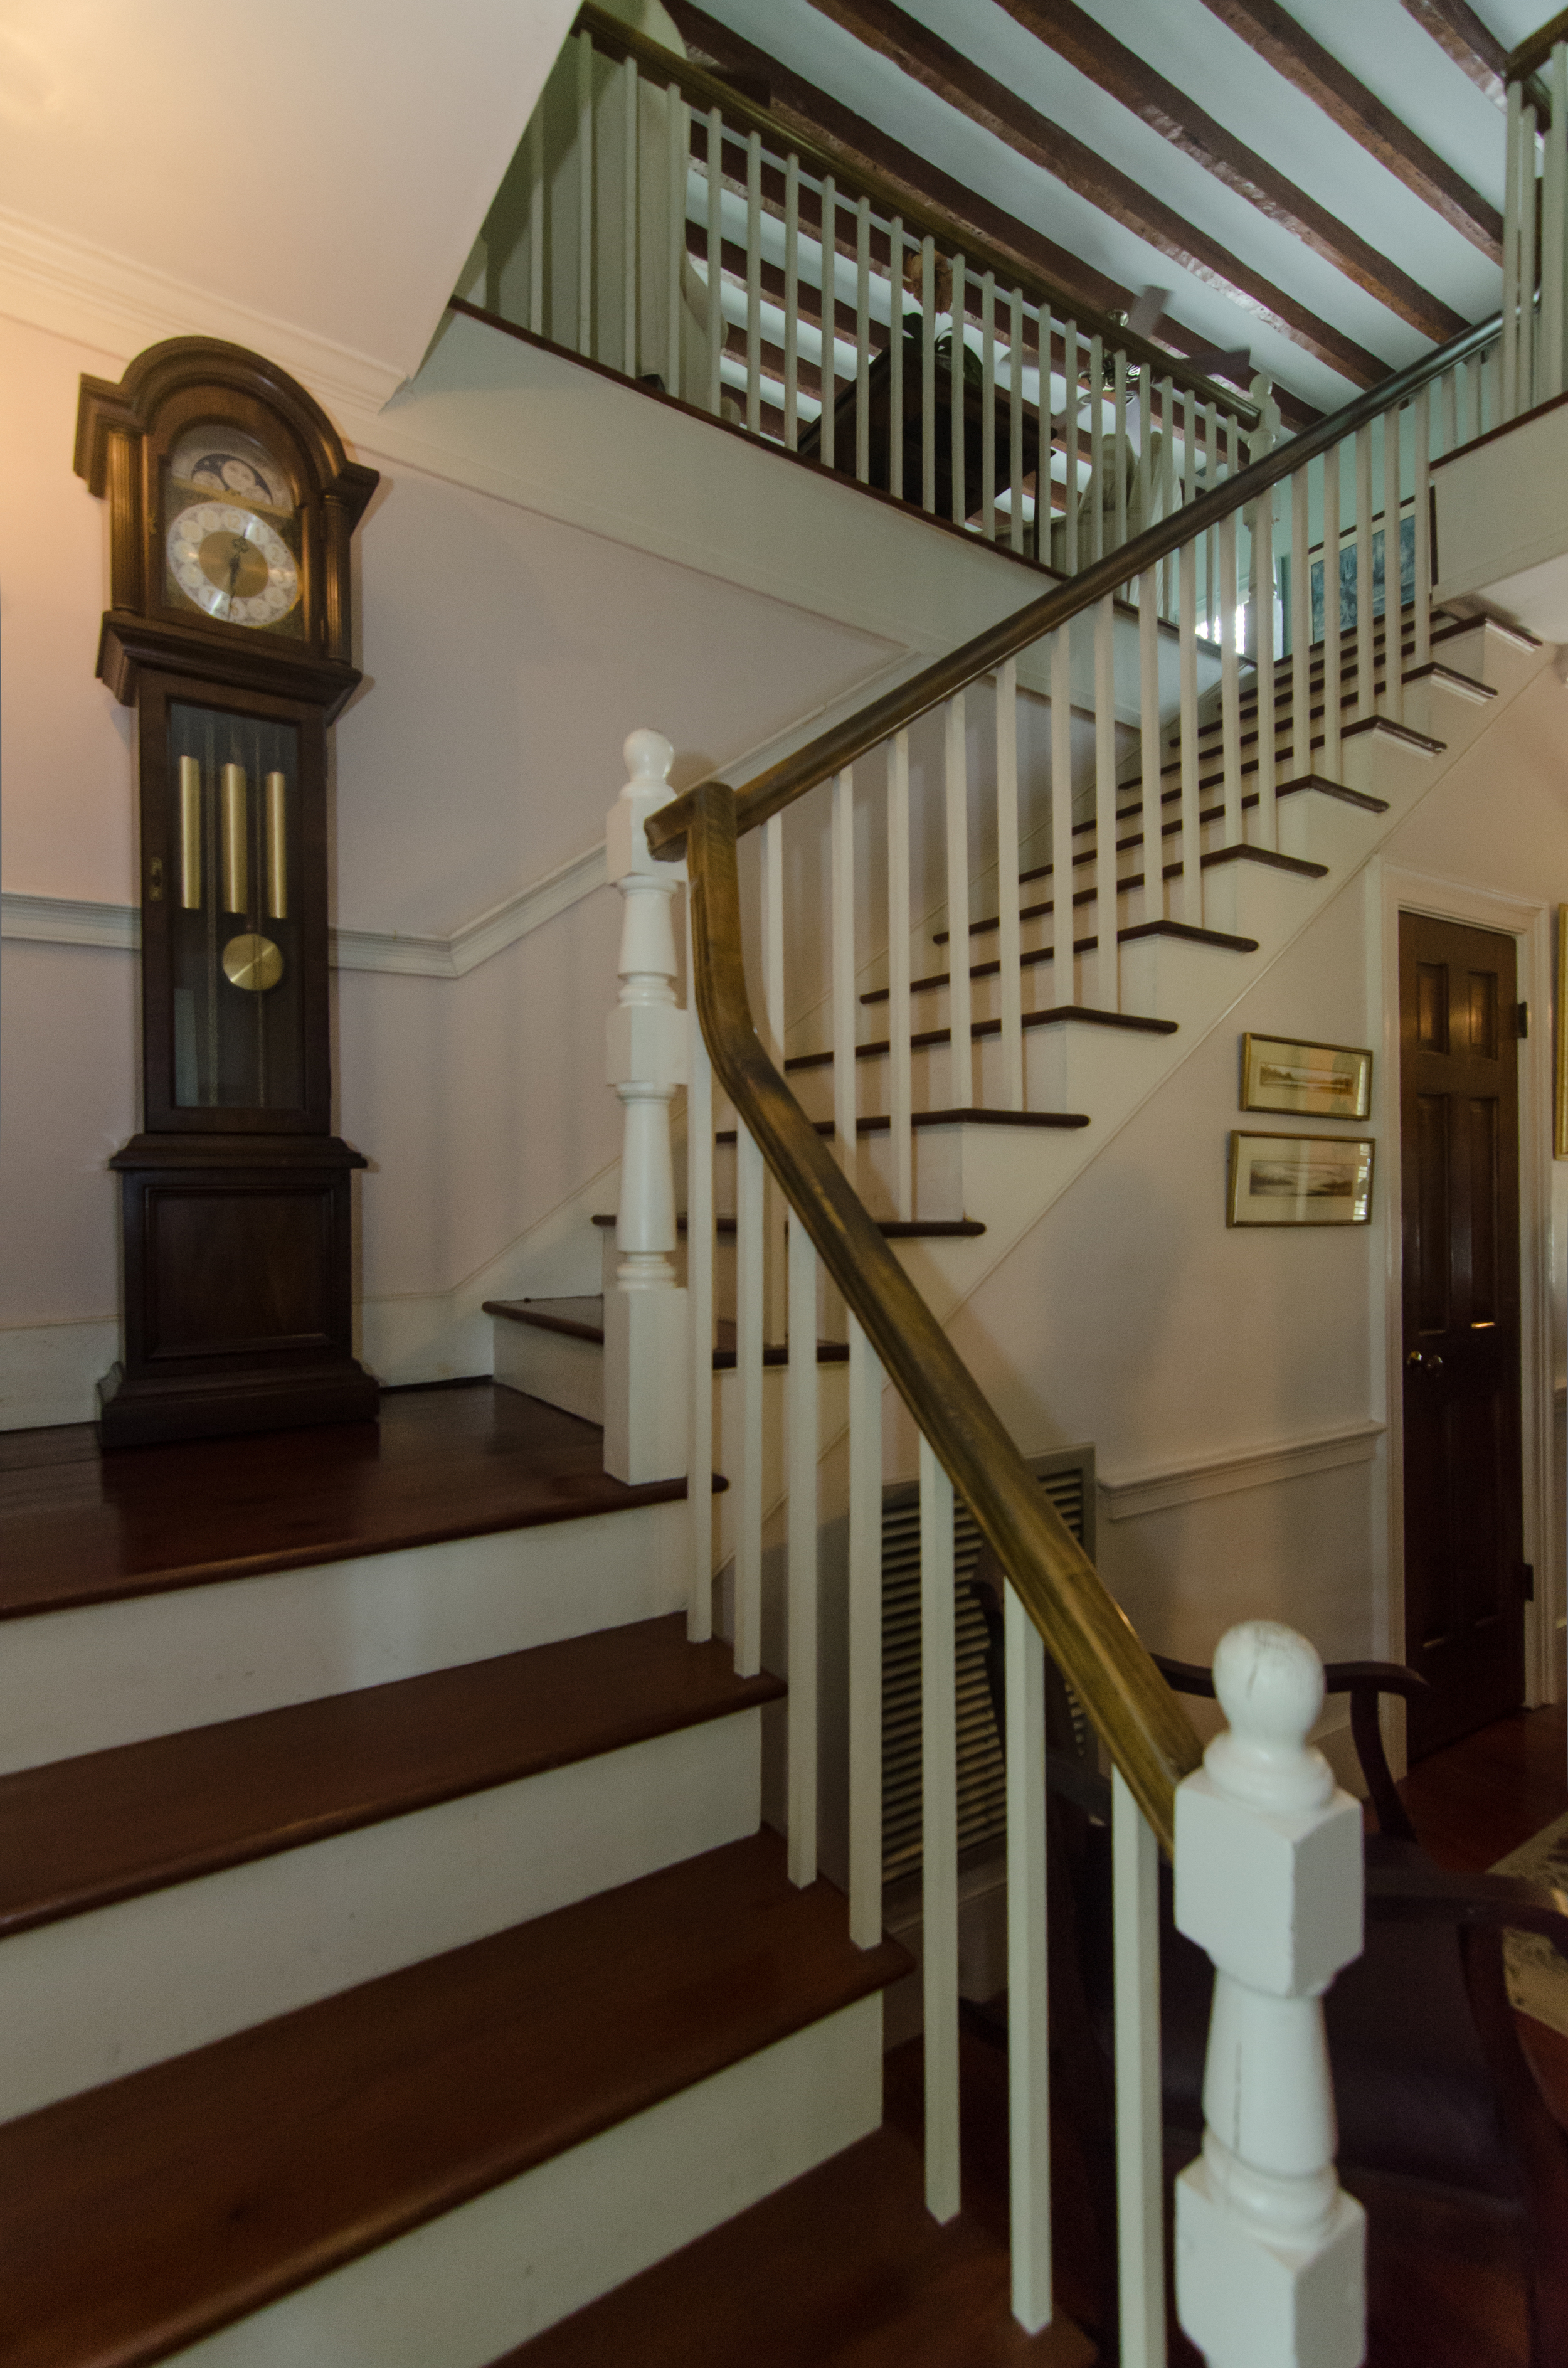 Staircase inside the Bailey House.